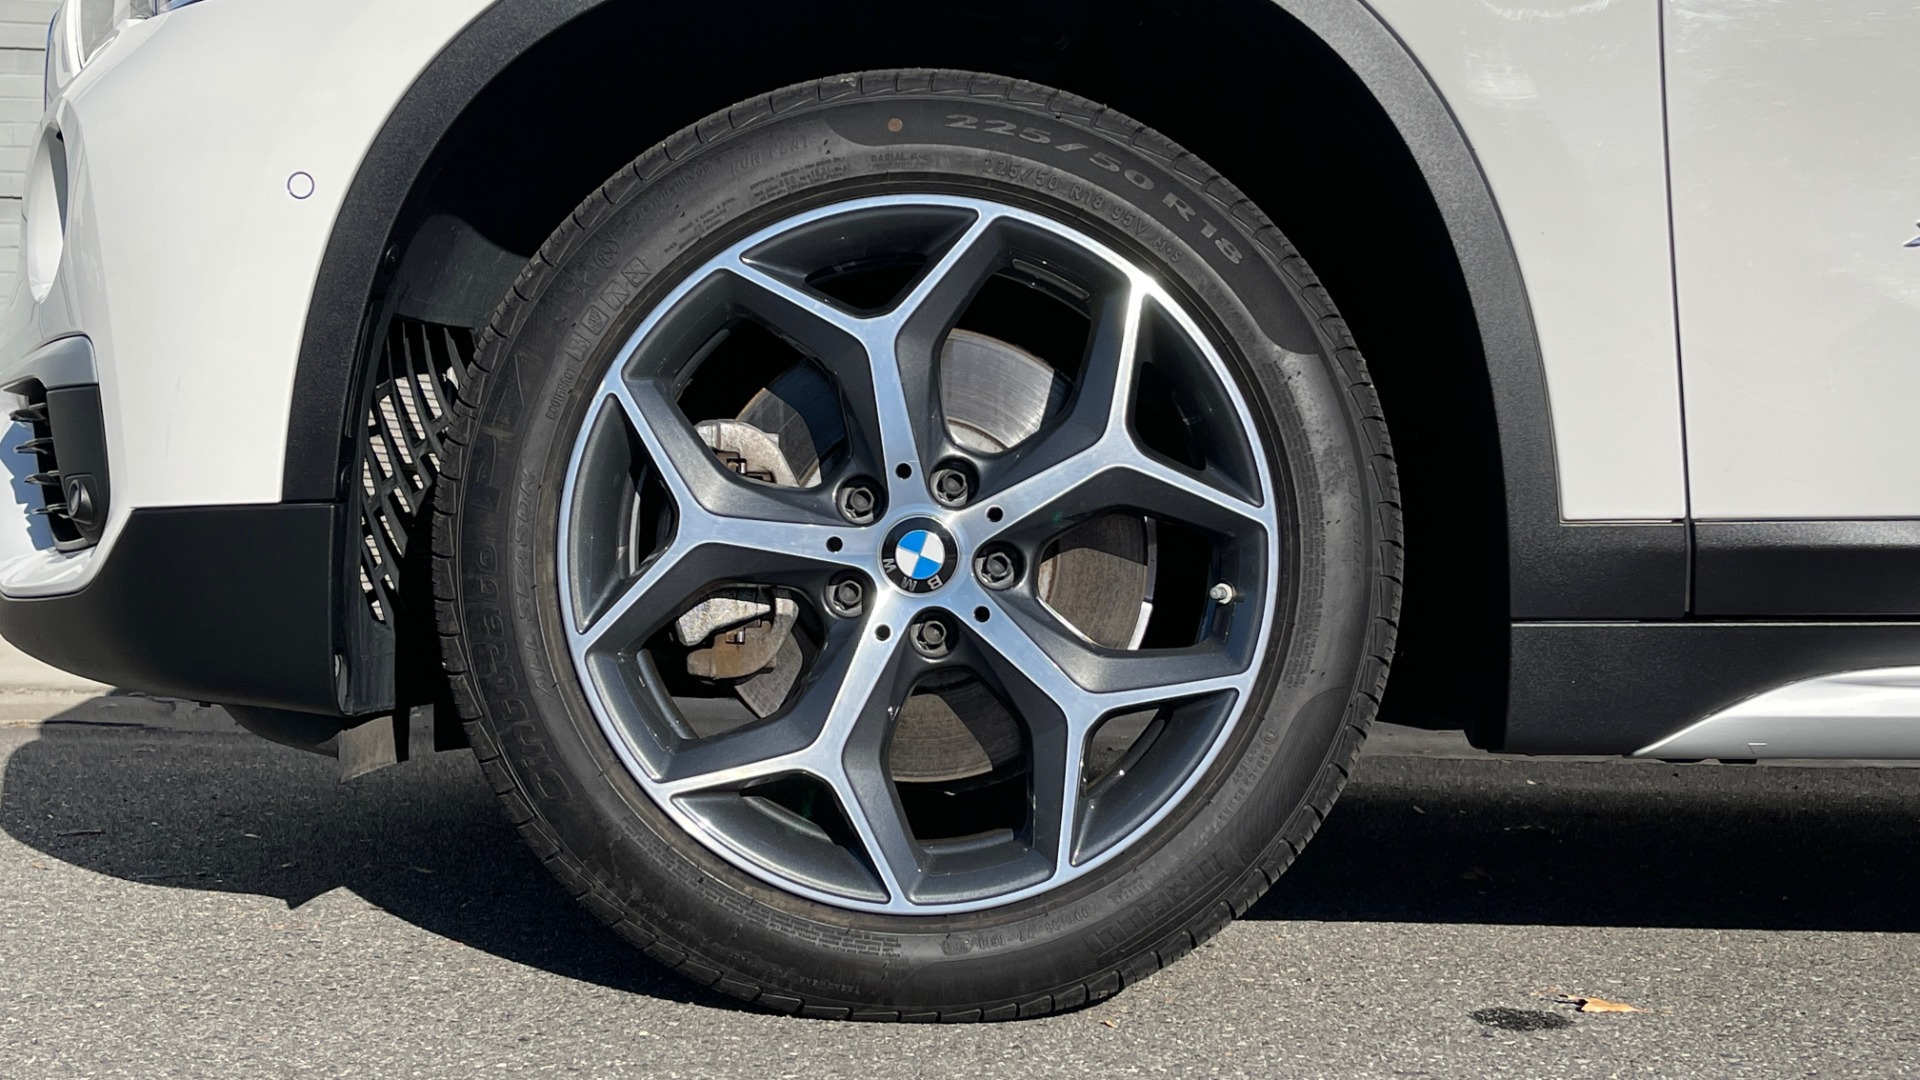 Used 2018 BMW X1 XDRIVE28I / CONV PKG / PANO-ROOF / PARK ASST / REARVIEW for sale $31,995 at Formula Imports in Charlotte NC 28227 58